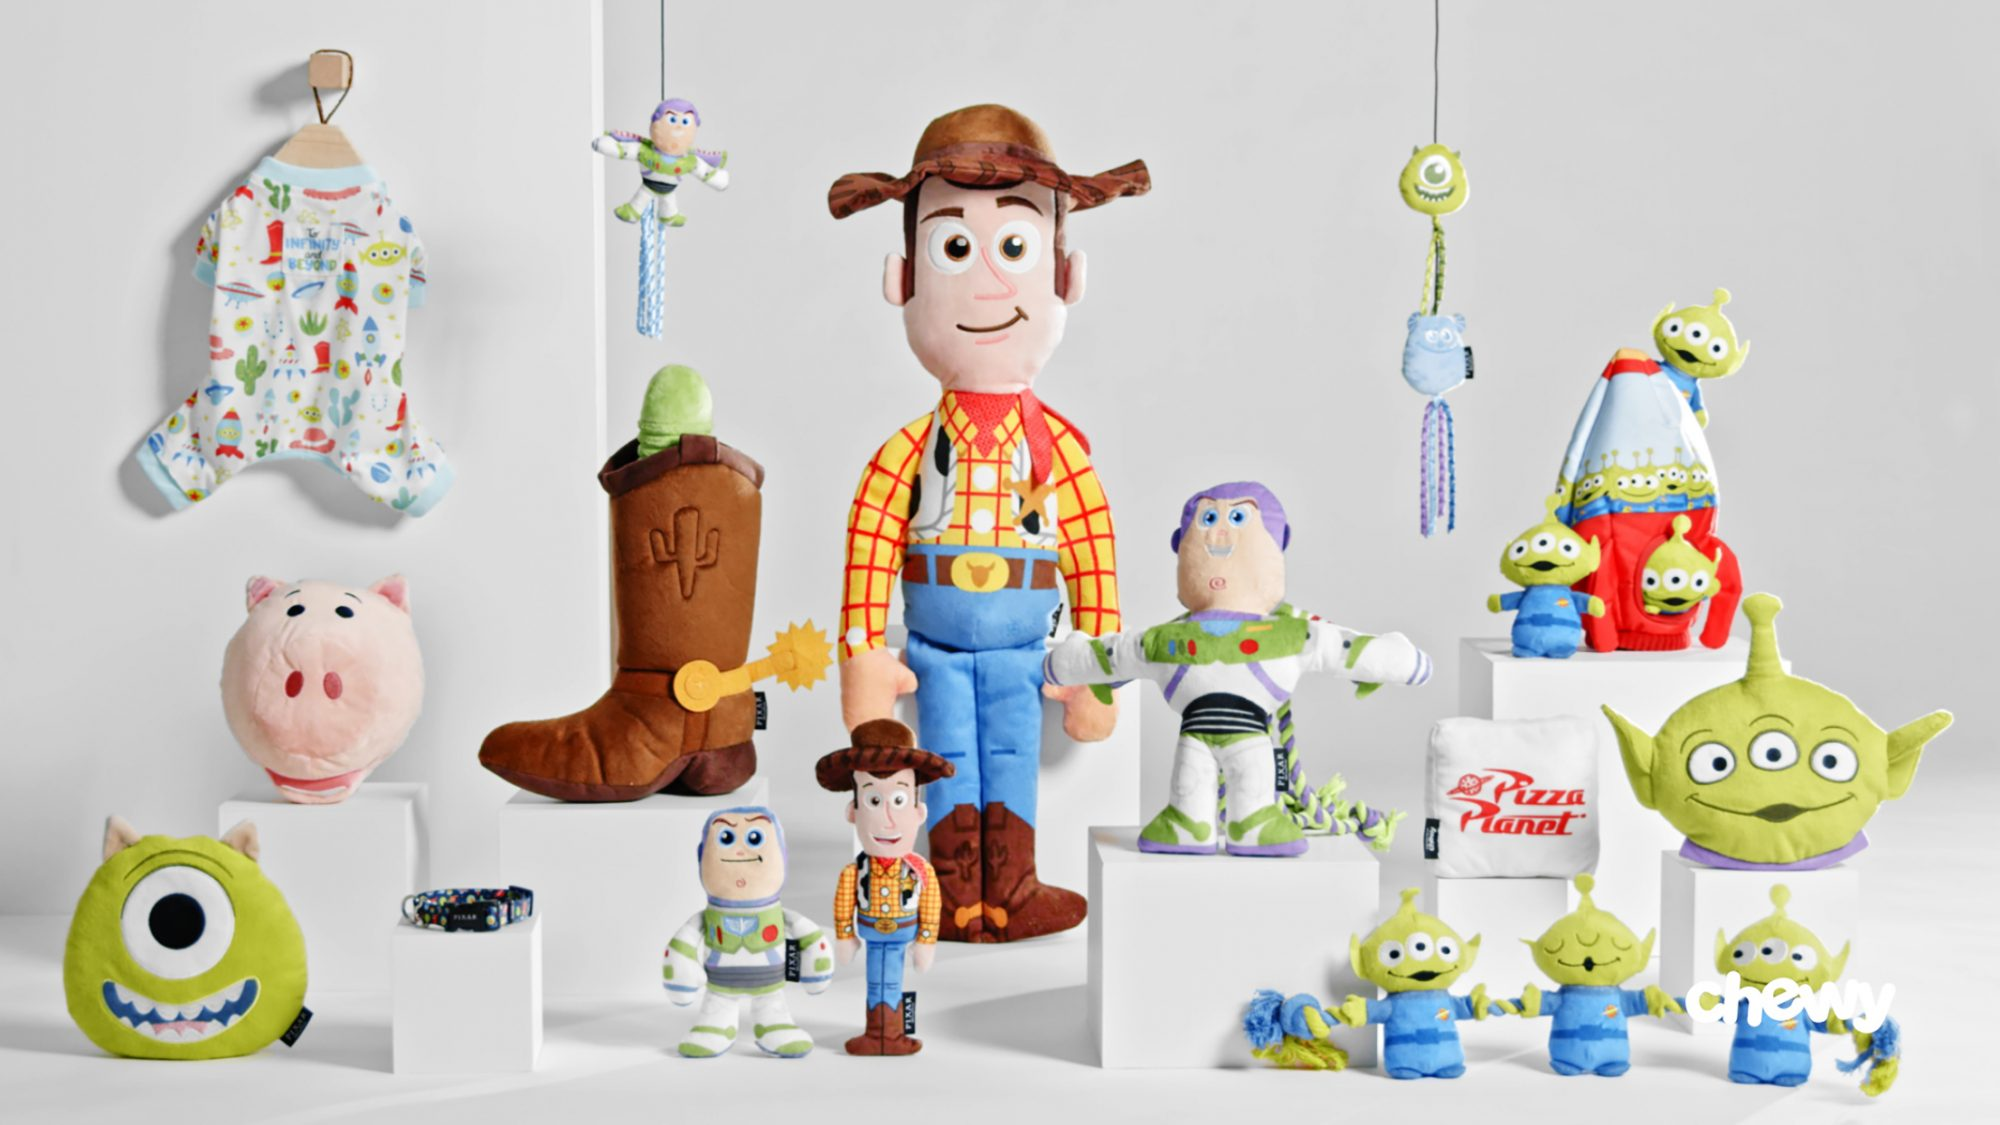 Pixar collection at Chewy